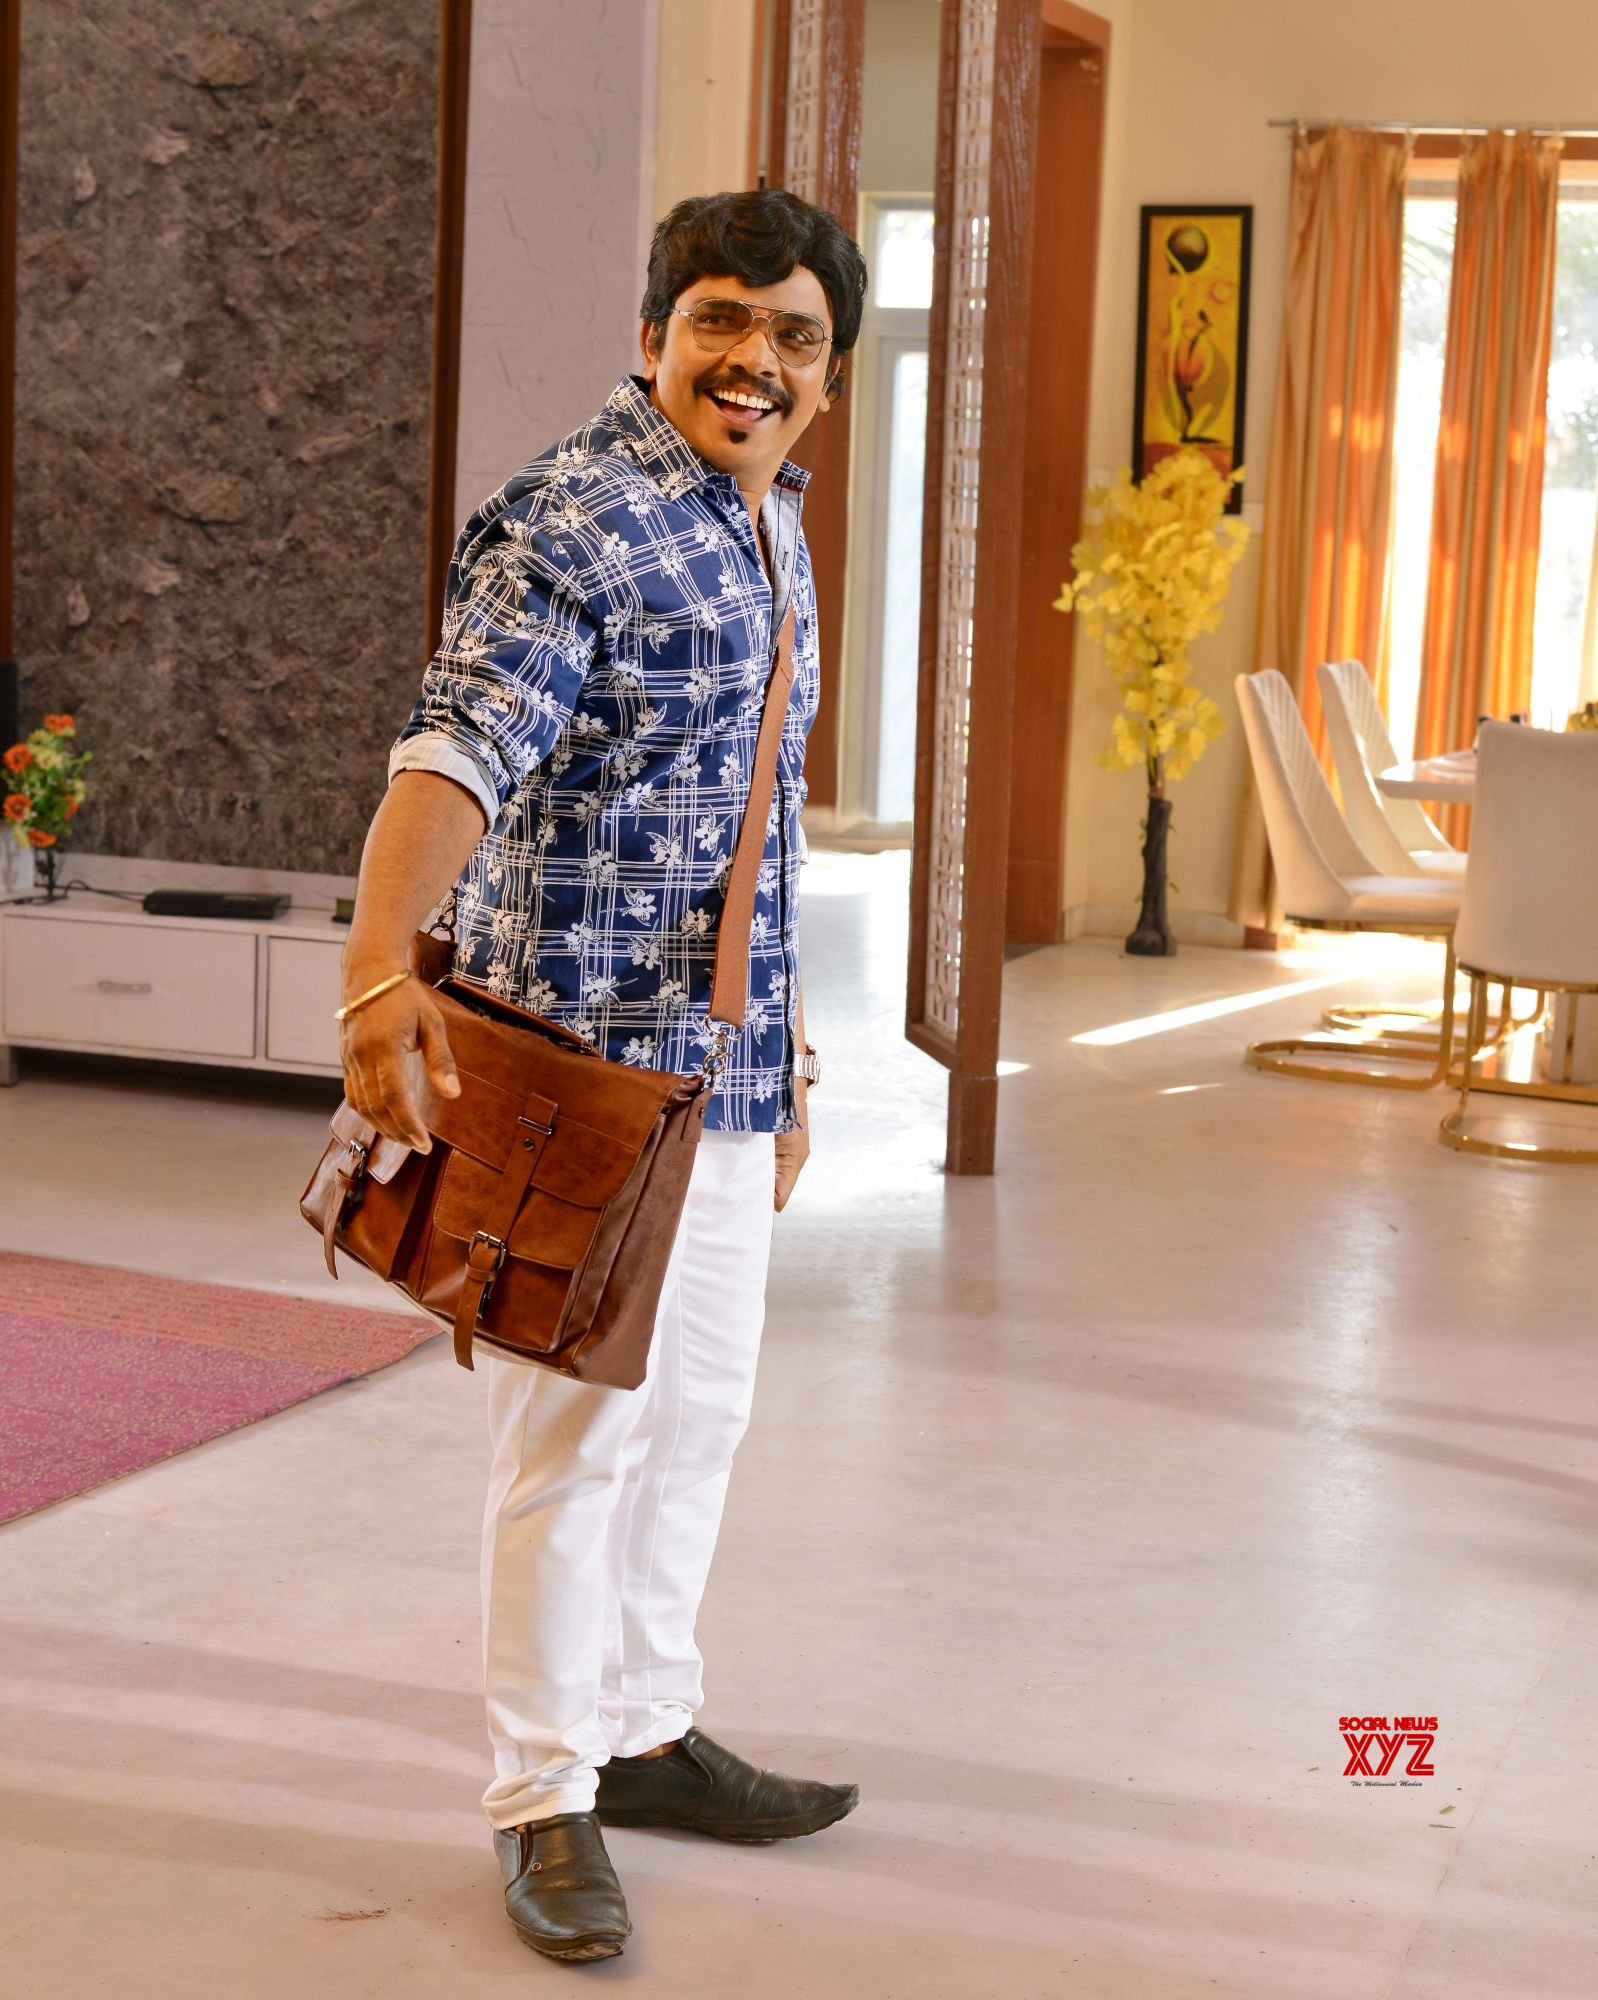 Burning Star Sampoornesh Babu's Bazar Rowdy Is All Set To Release Worldwide In Theaters In August